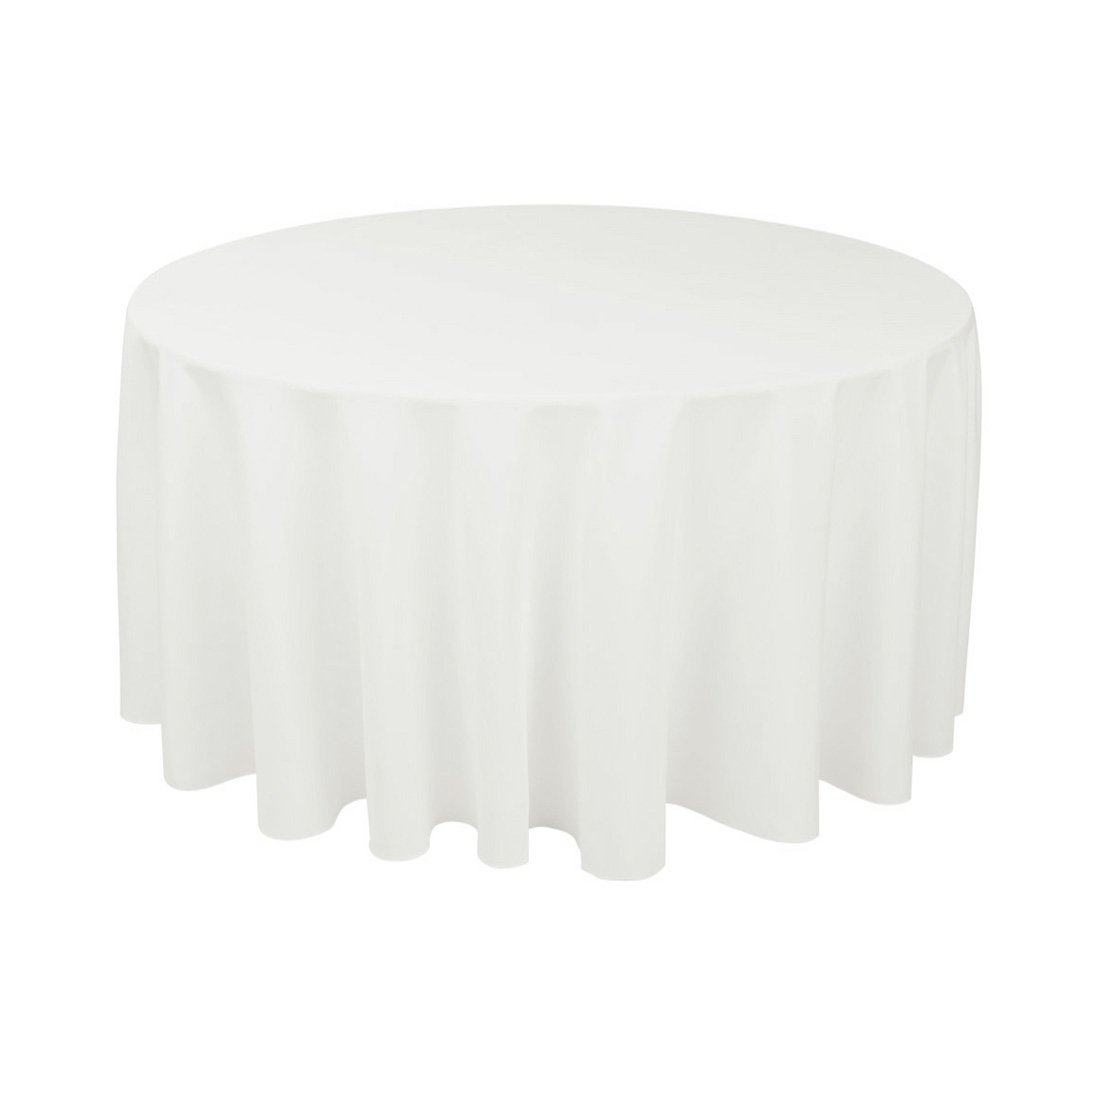 Craft and Party - 10 pcs Round Tablecloth for Home, Party, Wedding or Restaurant Use. (120'' Round White) by Craft & Party